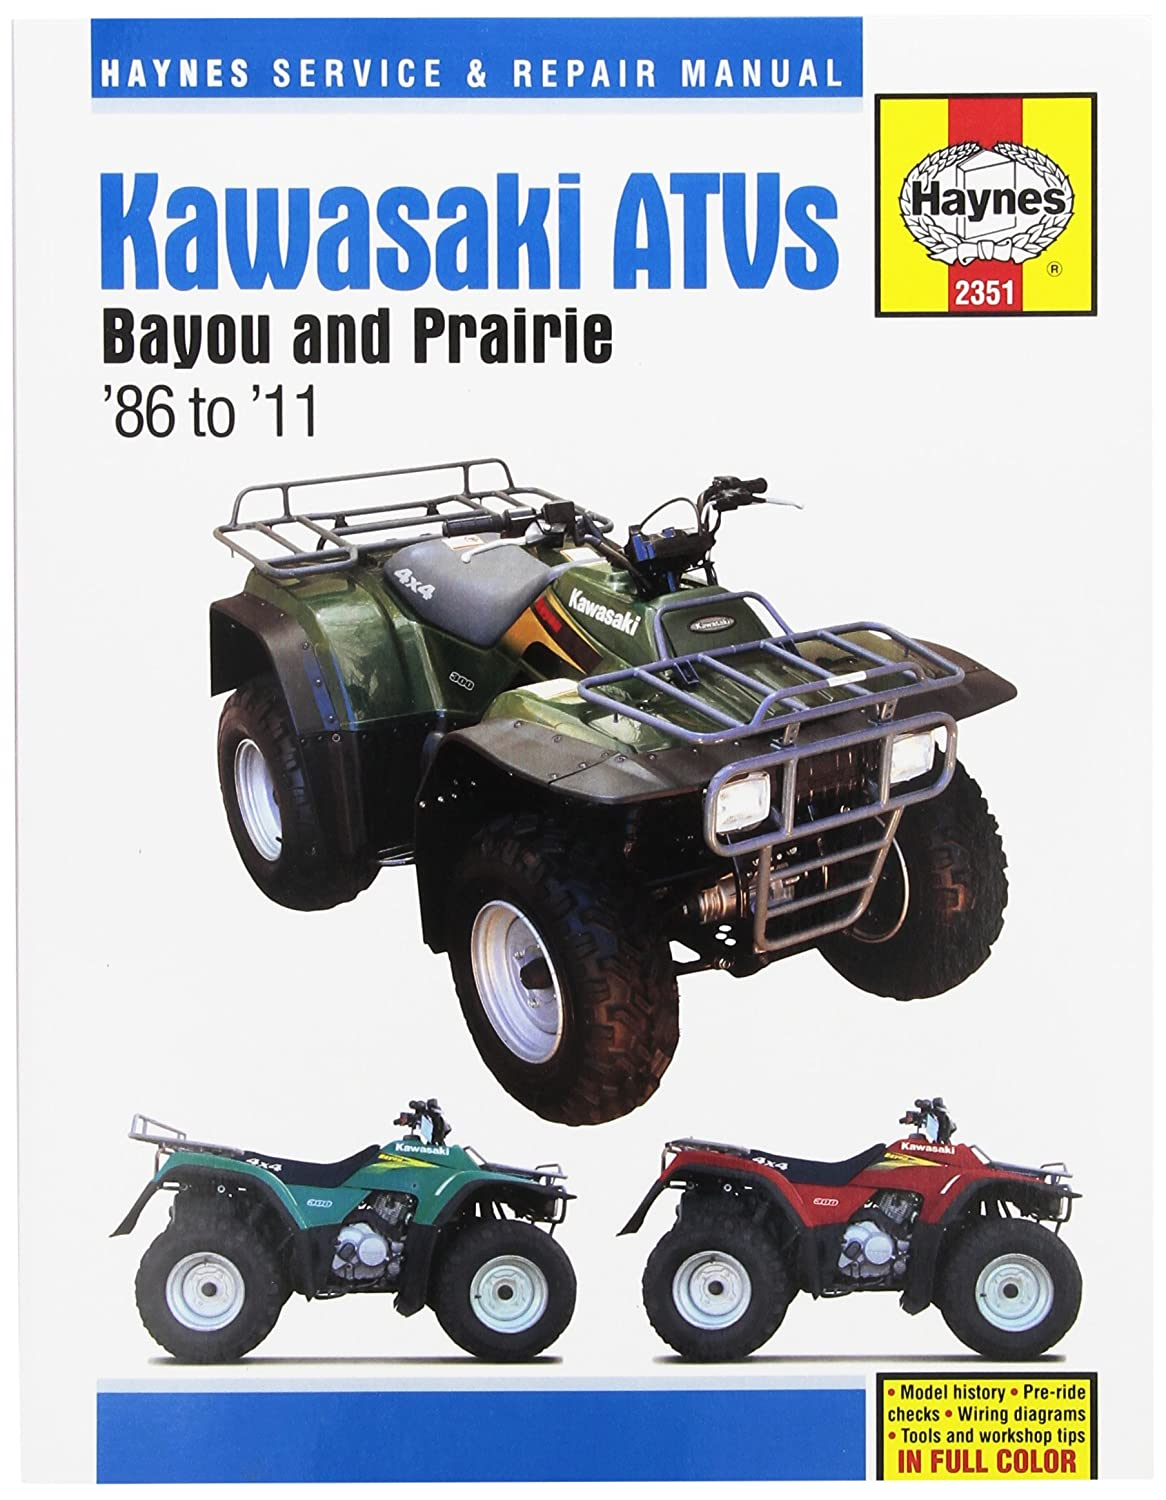 Kawasaki Bayou & Prairie ATV Haynes Repair Manual (1986 - 2011) on arctic cat 250 engine diagram, arctic cat 300 engine diagram, polaris magnum 425 engine diagram, polaris rzr engine diagram, honda trx 300 engine diagram, suzuki king quad 300 engine diagram, suzuki eiger 400 engine diagram, yamaha grizzly 350 engine diagram, suzuki king quad 750 engine diagram, polaris sportsman 700 engine diagram, arctic cat 400 engine diagram, polaris ranger engine diagram, yamaha big bear 400 engine diagram, polaris xpedition 425 engine diagram, polaris sportsman 500 engine diagram, polaris sportsman 400 engine diagram, kawasaki bayou 300 engine diagram, kawasaki brute force 300 engine diagram, kawasaki lakota 300 carburetor diagram, yamaha grizzly 660 engine diagram,